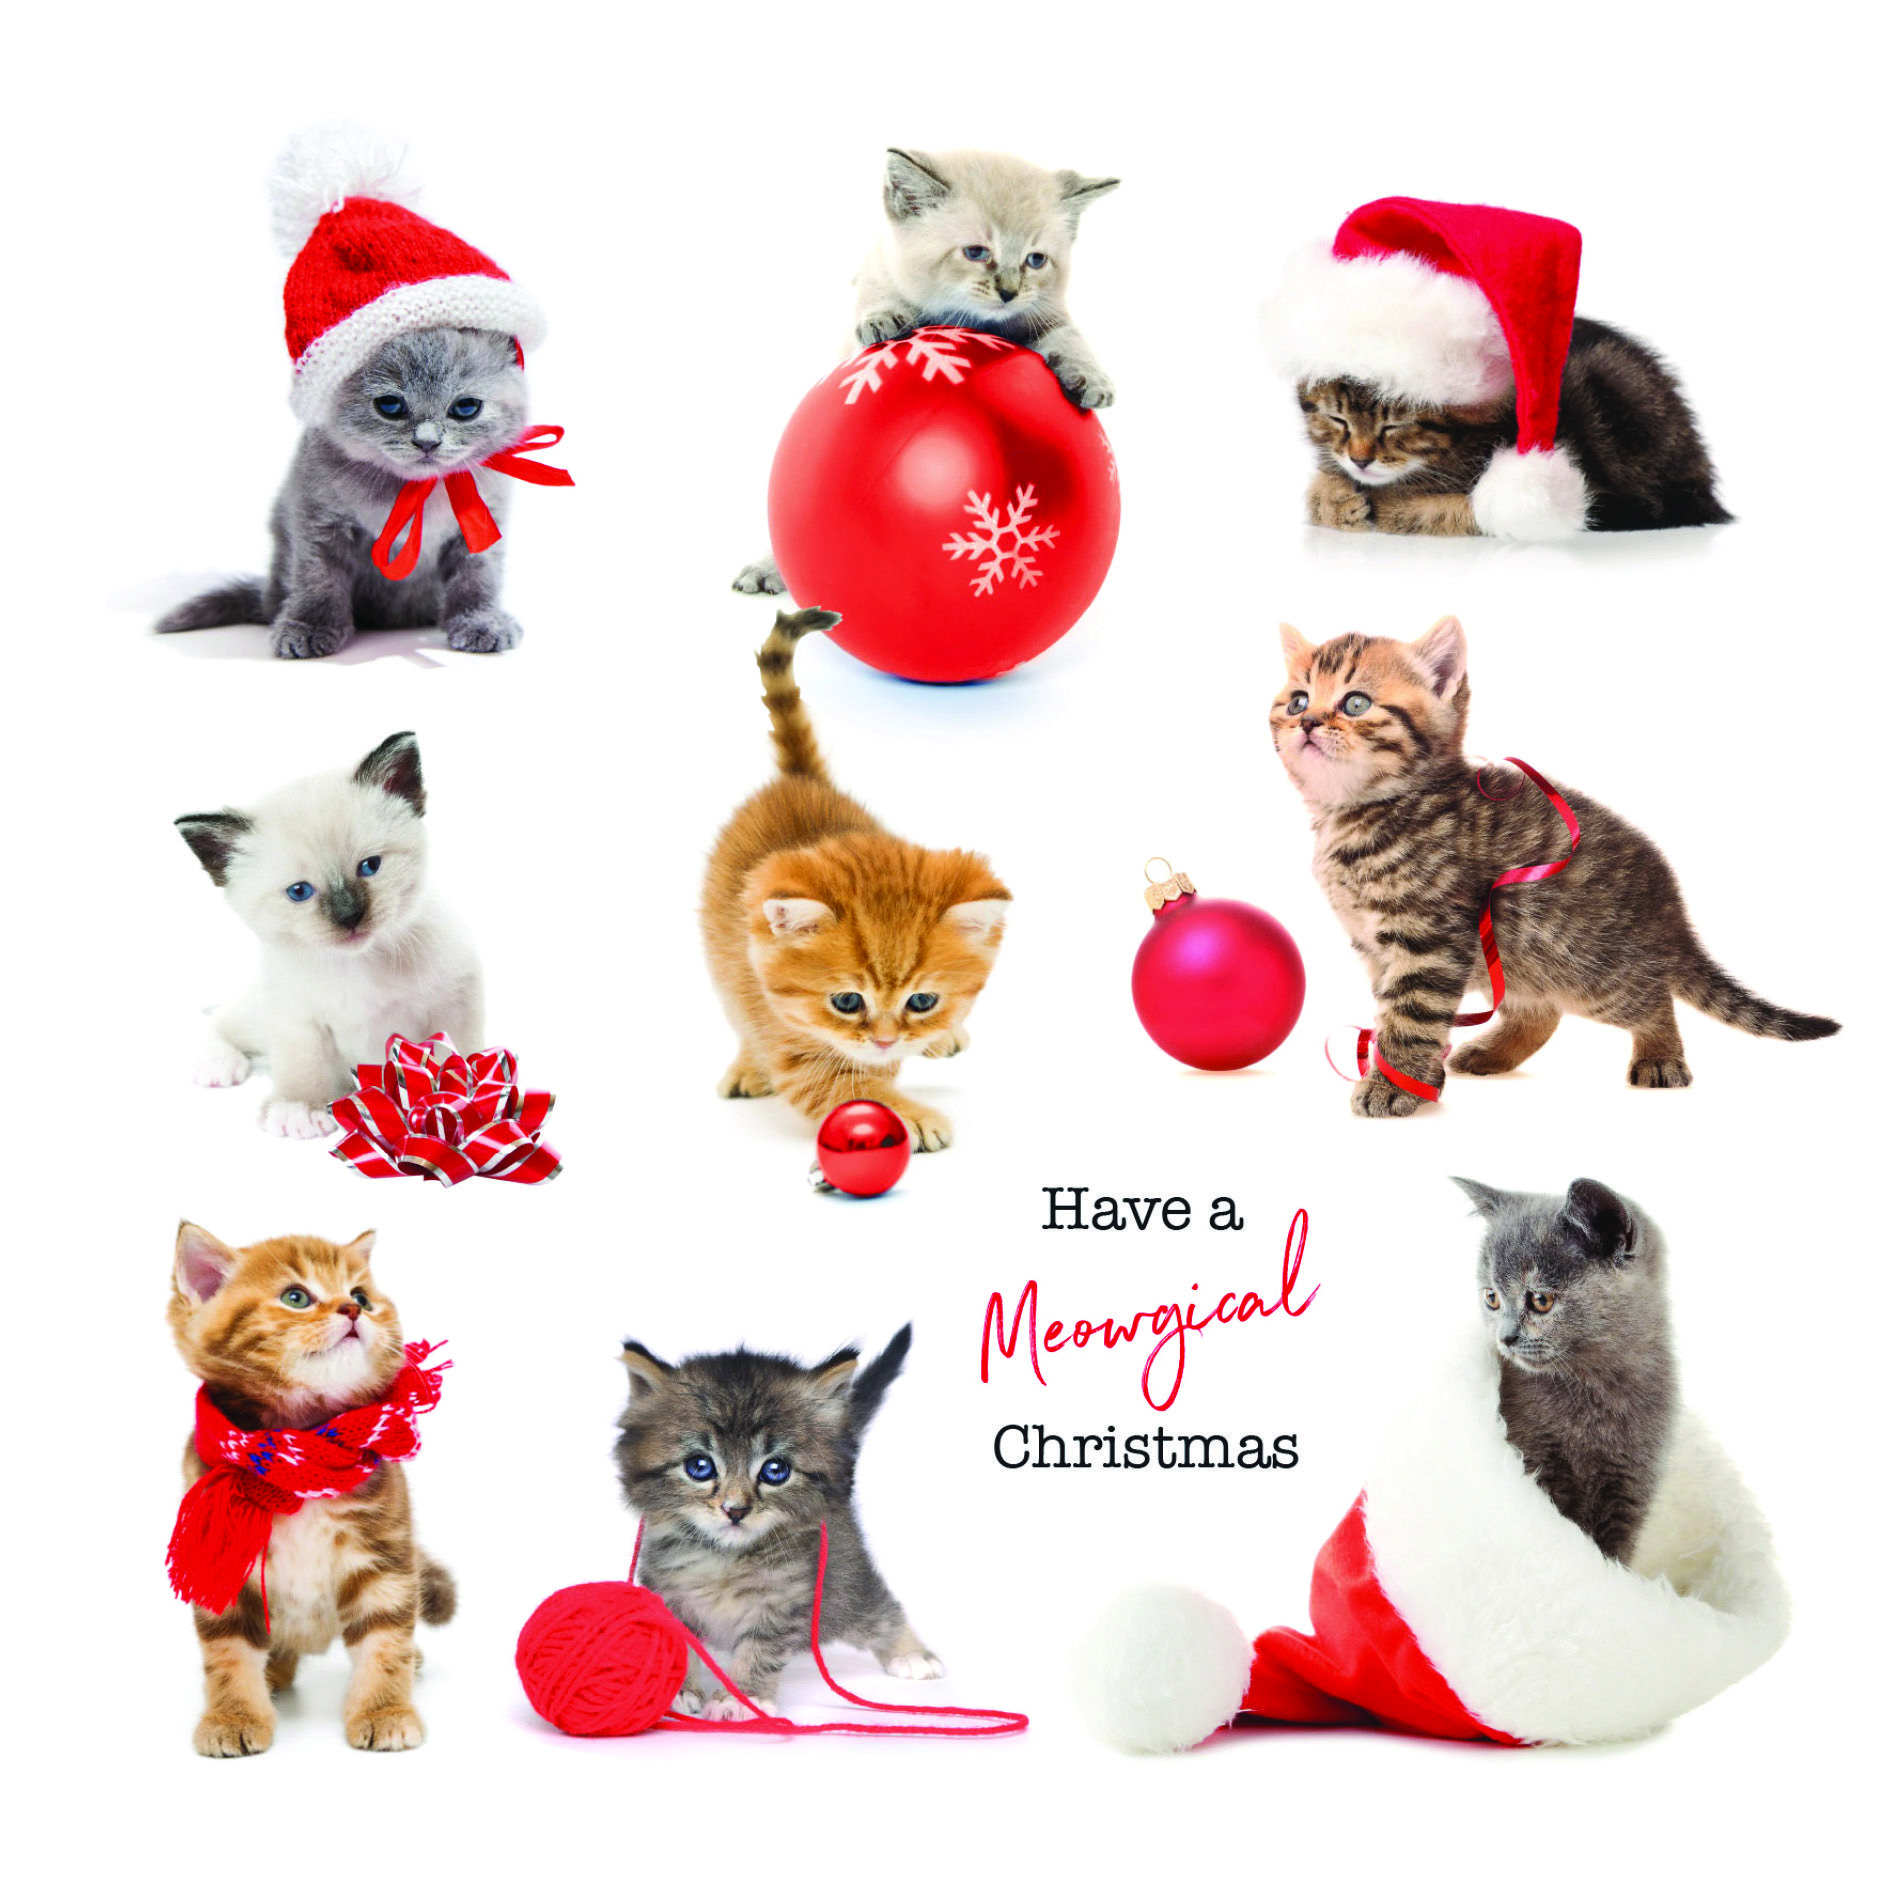 Kittens Charity Christmas Card Contemporary christmas